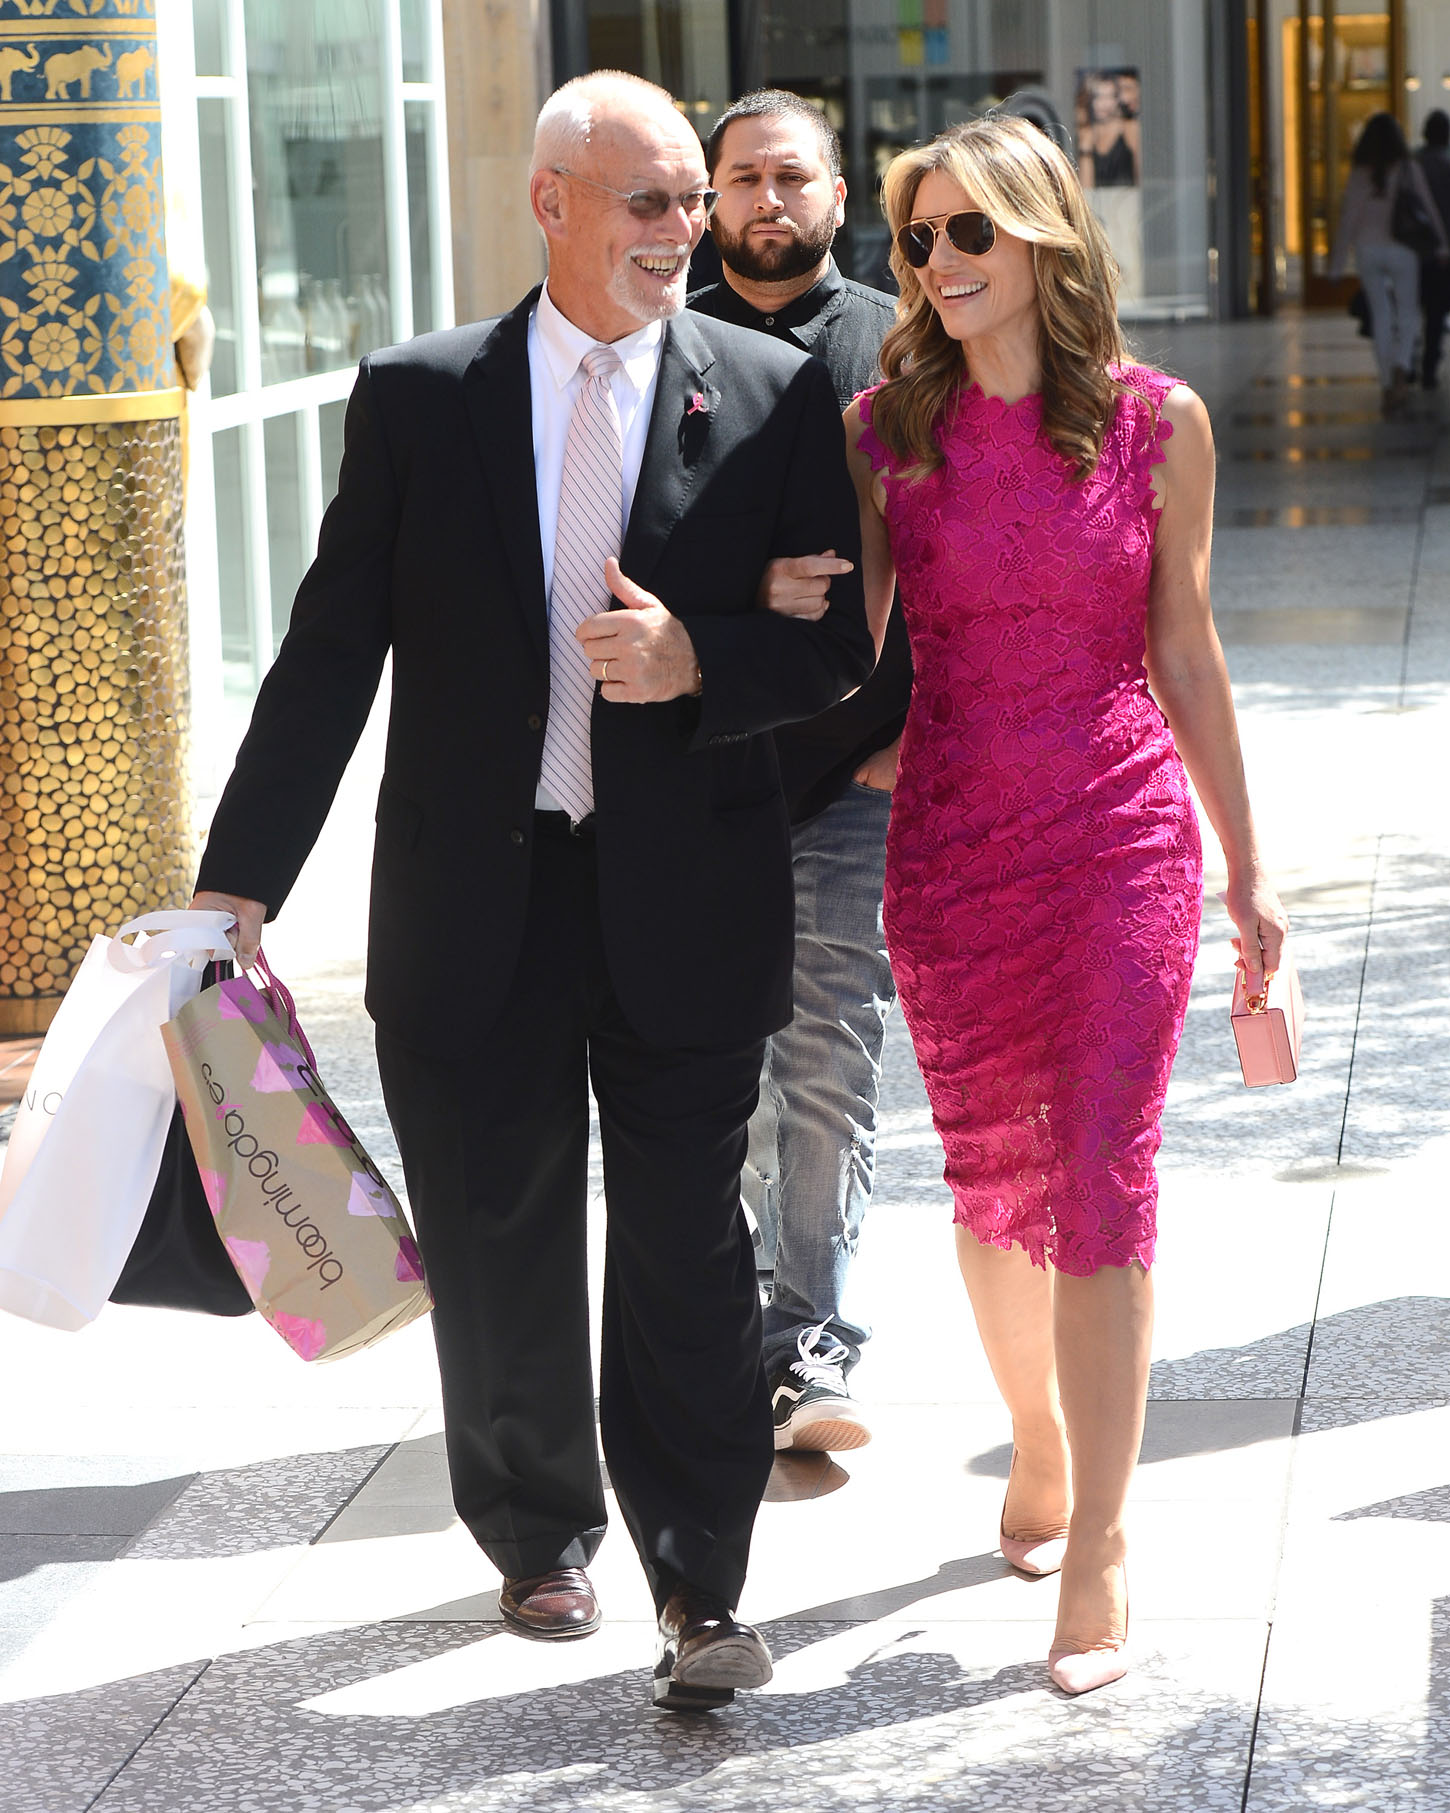 EXCLUSIVE: Elizabeth Hurley Leaves Bloomingdales Arm in Arm With a Mystery Man <P> Pictured: Elizabeth Hurley <B>Ref: SPL1595694  051017   EXCLUSIVE</B><BR/> Picture by: All Access / SAF / Splash News<BR/> </P><P> <B>Splash News and Pictures</B><BR/> Los Angeles:310-821-2666<BR/> New York:212-619-2666<BR/> London:870-934-2666<BR/> <span id=